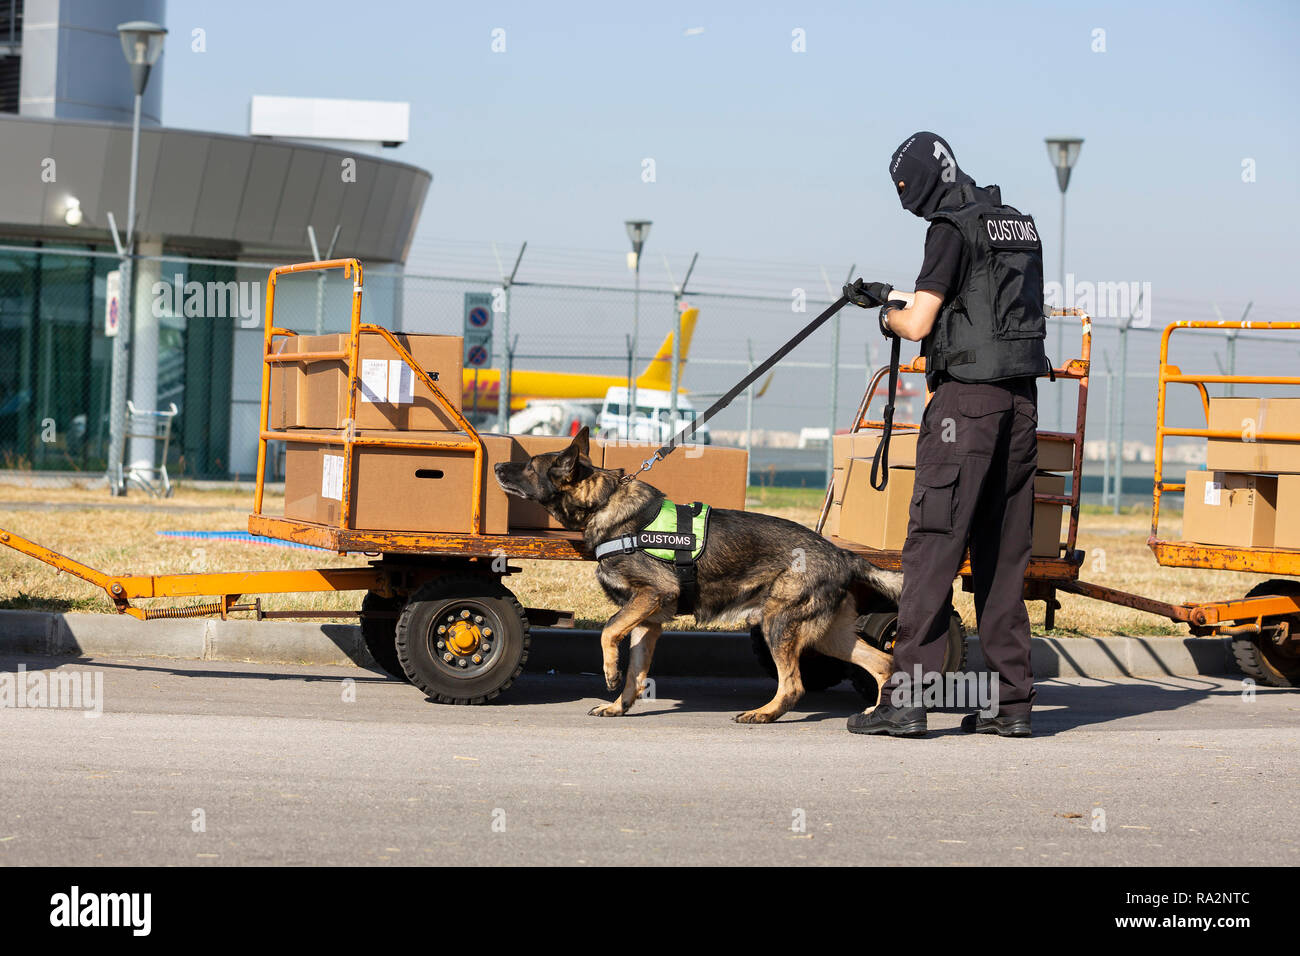 Customs and border protection officer and Drug enforcement administration special force participates with a specialized dog in a training at the airpo - Stock Image